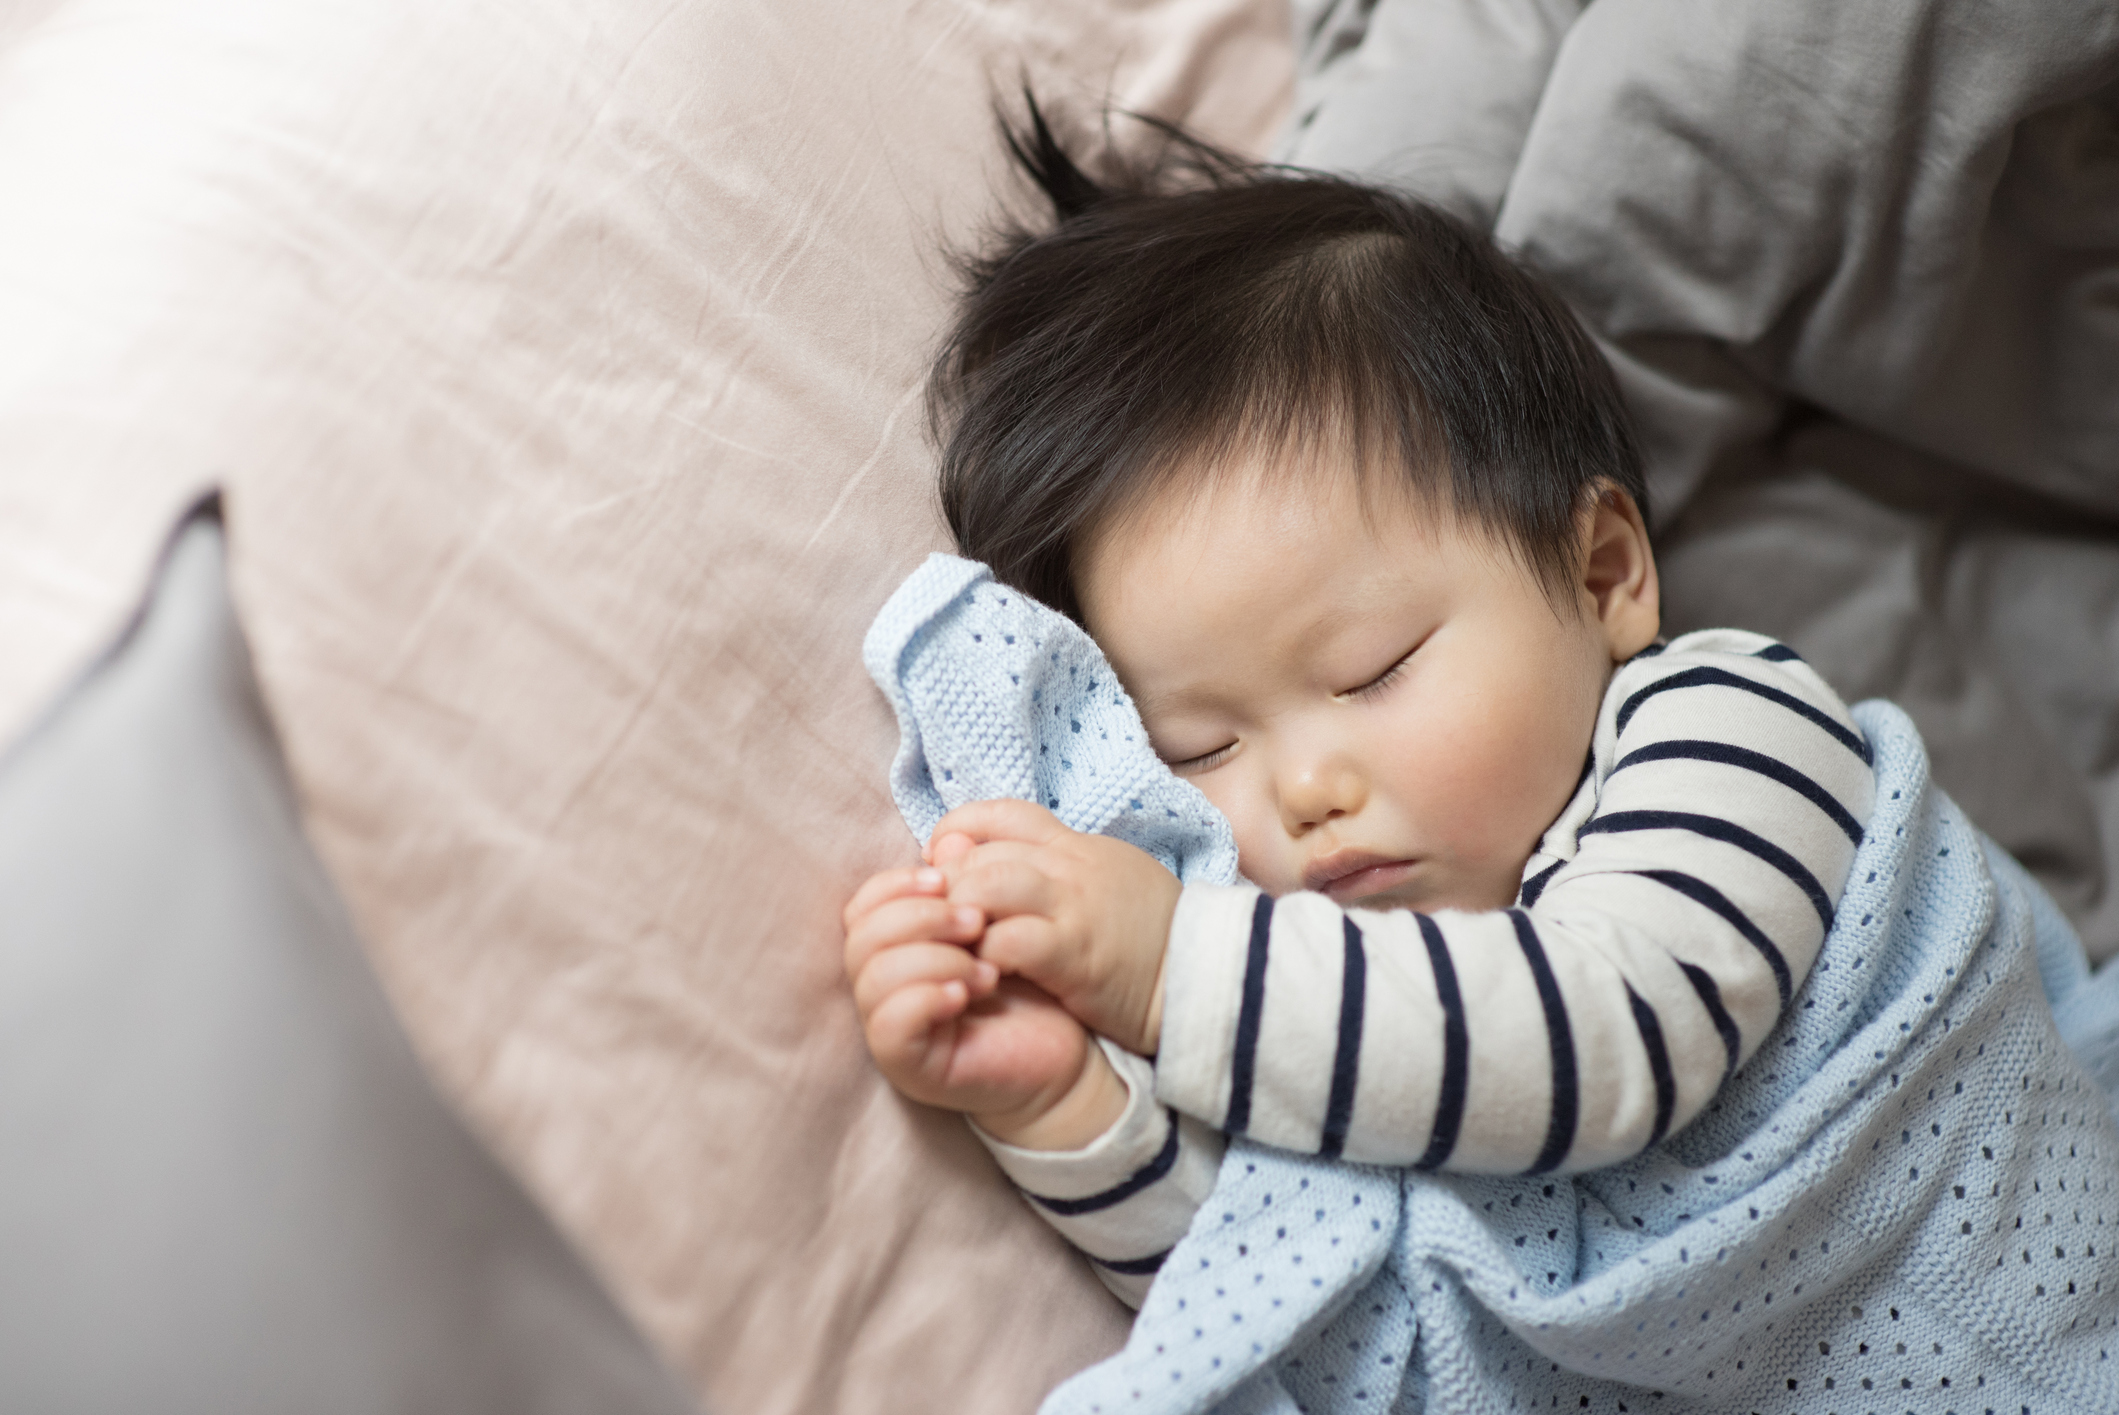 11 months old baby boy sleeping on bed